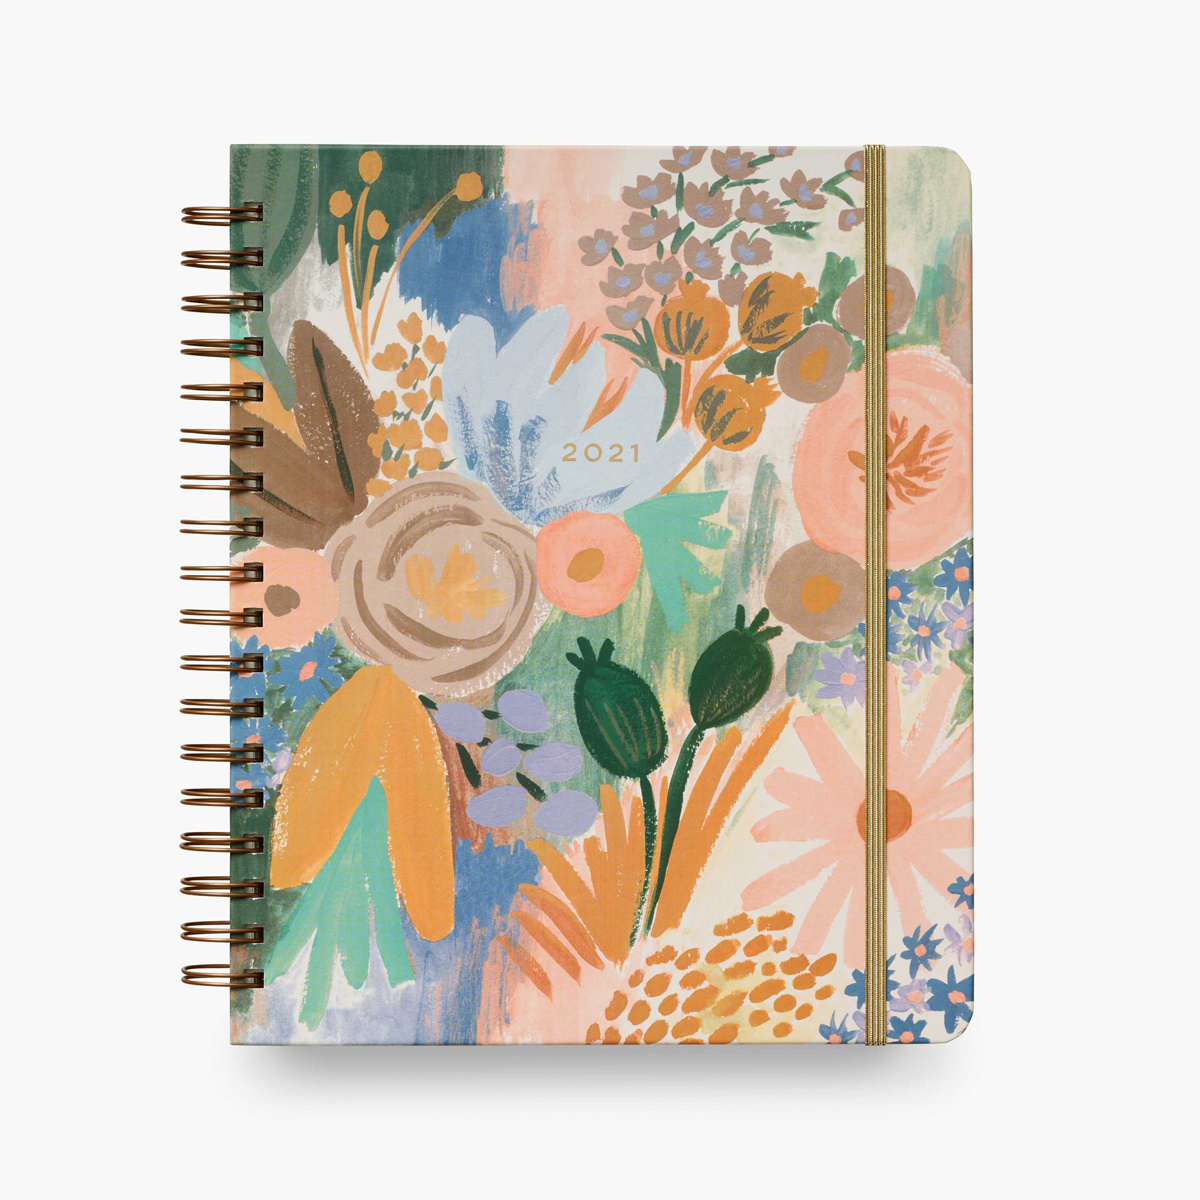 Rifle Paper Co - RP 2021 Luisa Hardcover Spiral 17 Month Planner